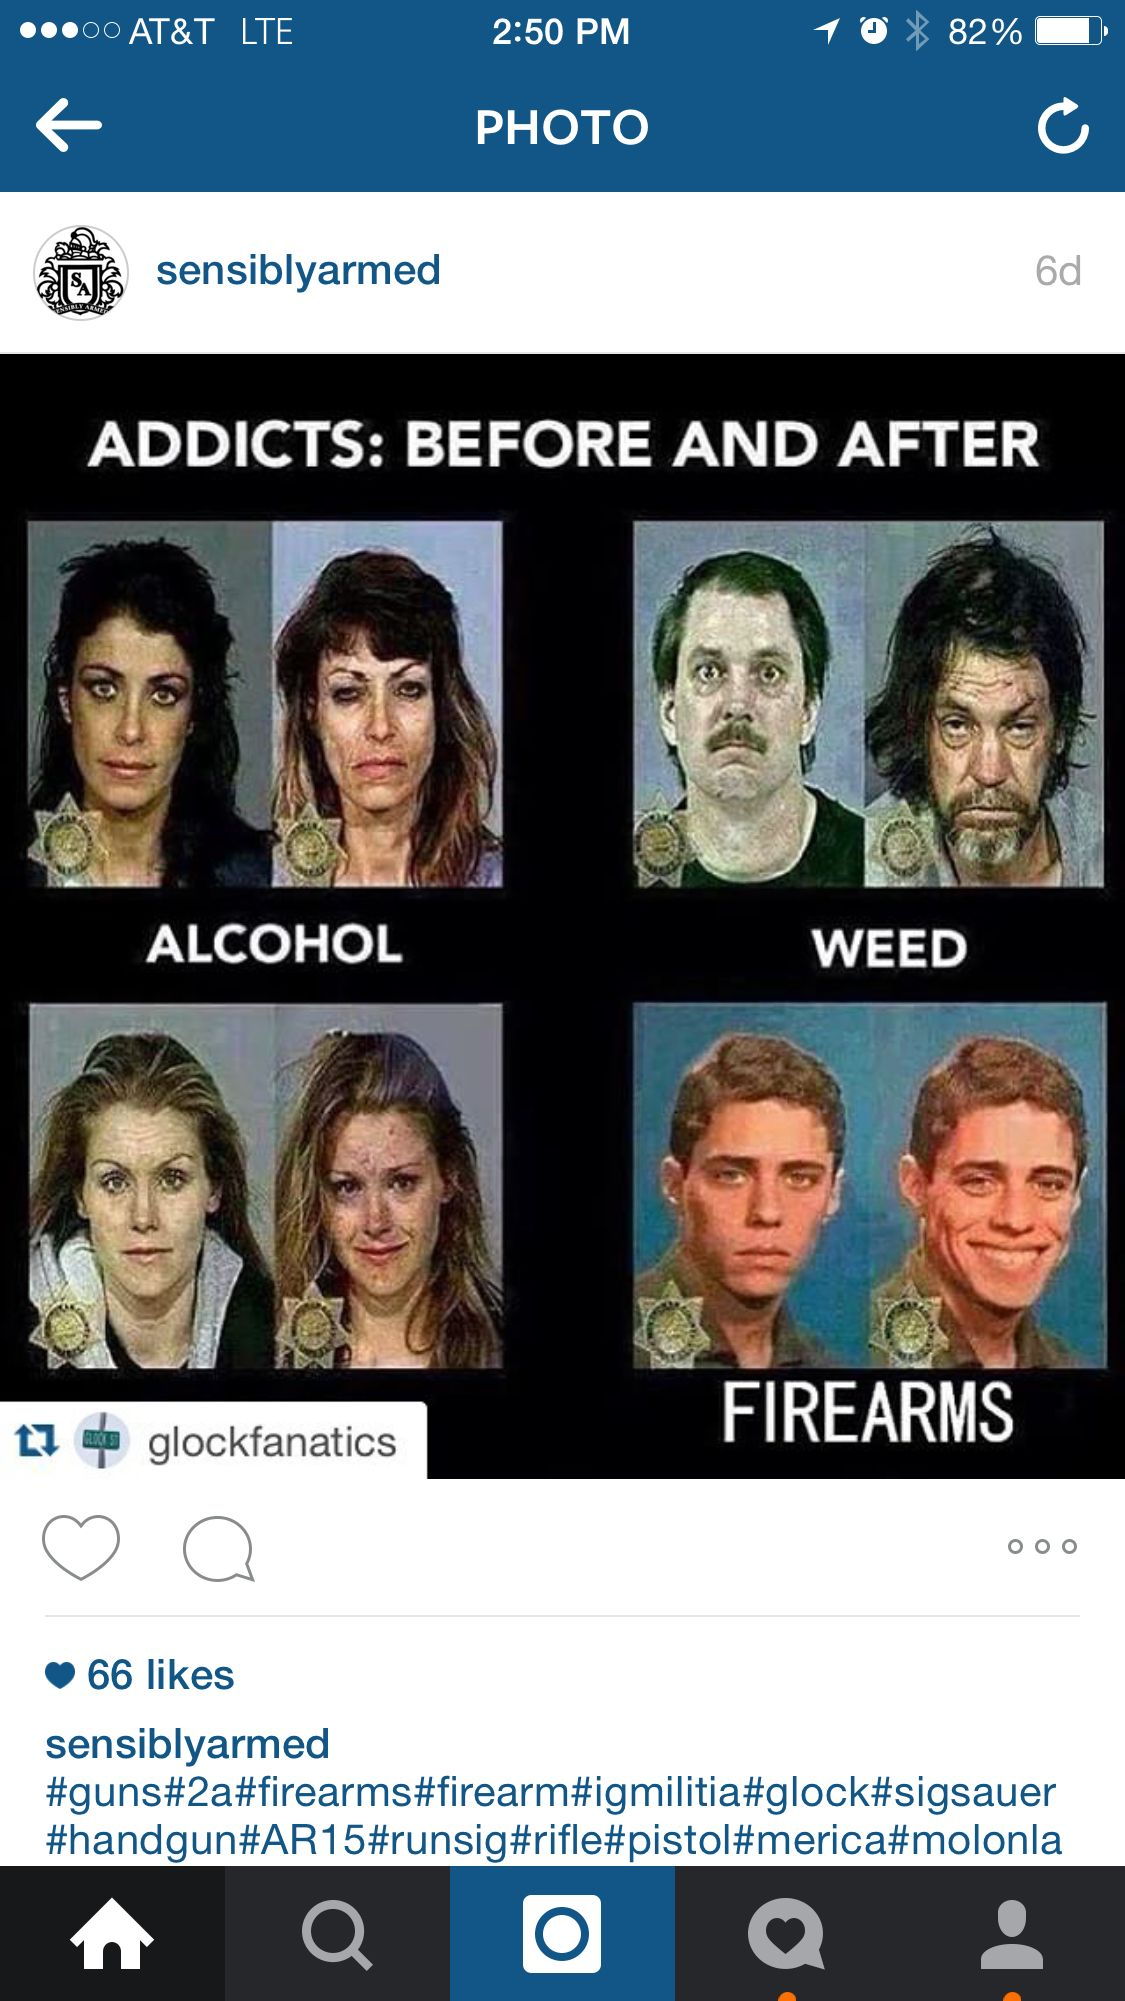 d2b59819b1d21eeca6283120621bd4dc funny before and after drugs, firearms funny things pinterest